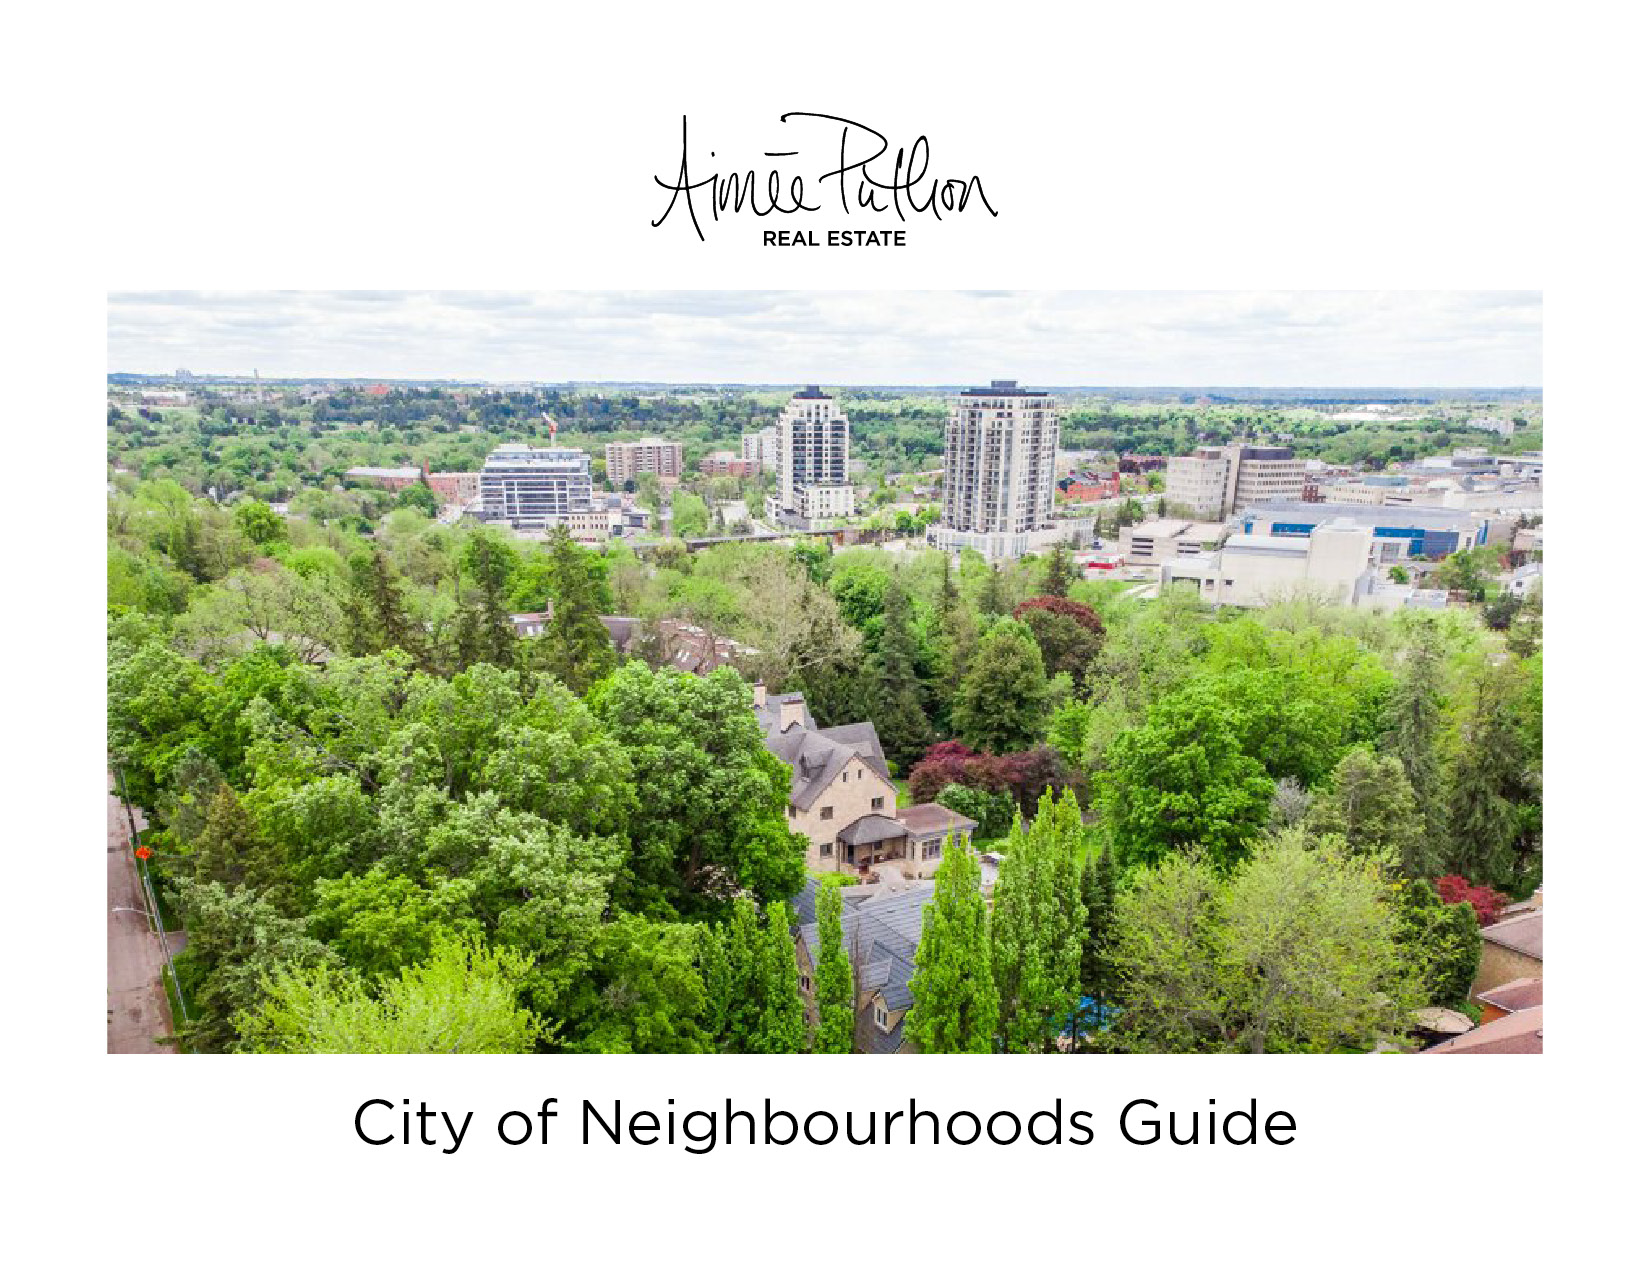 Aimee Puthon Real Estate Guides